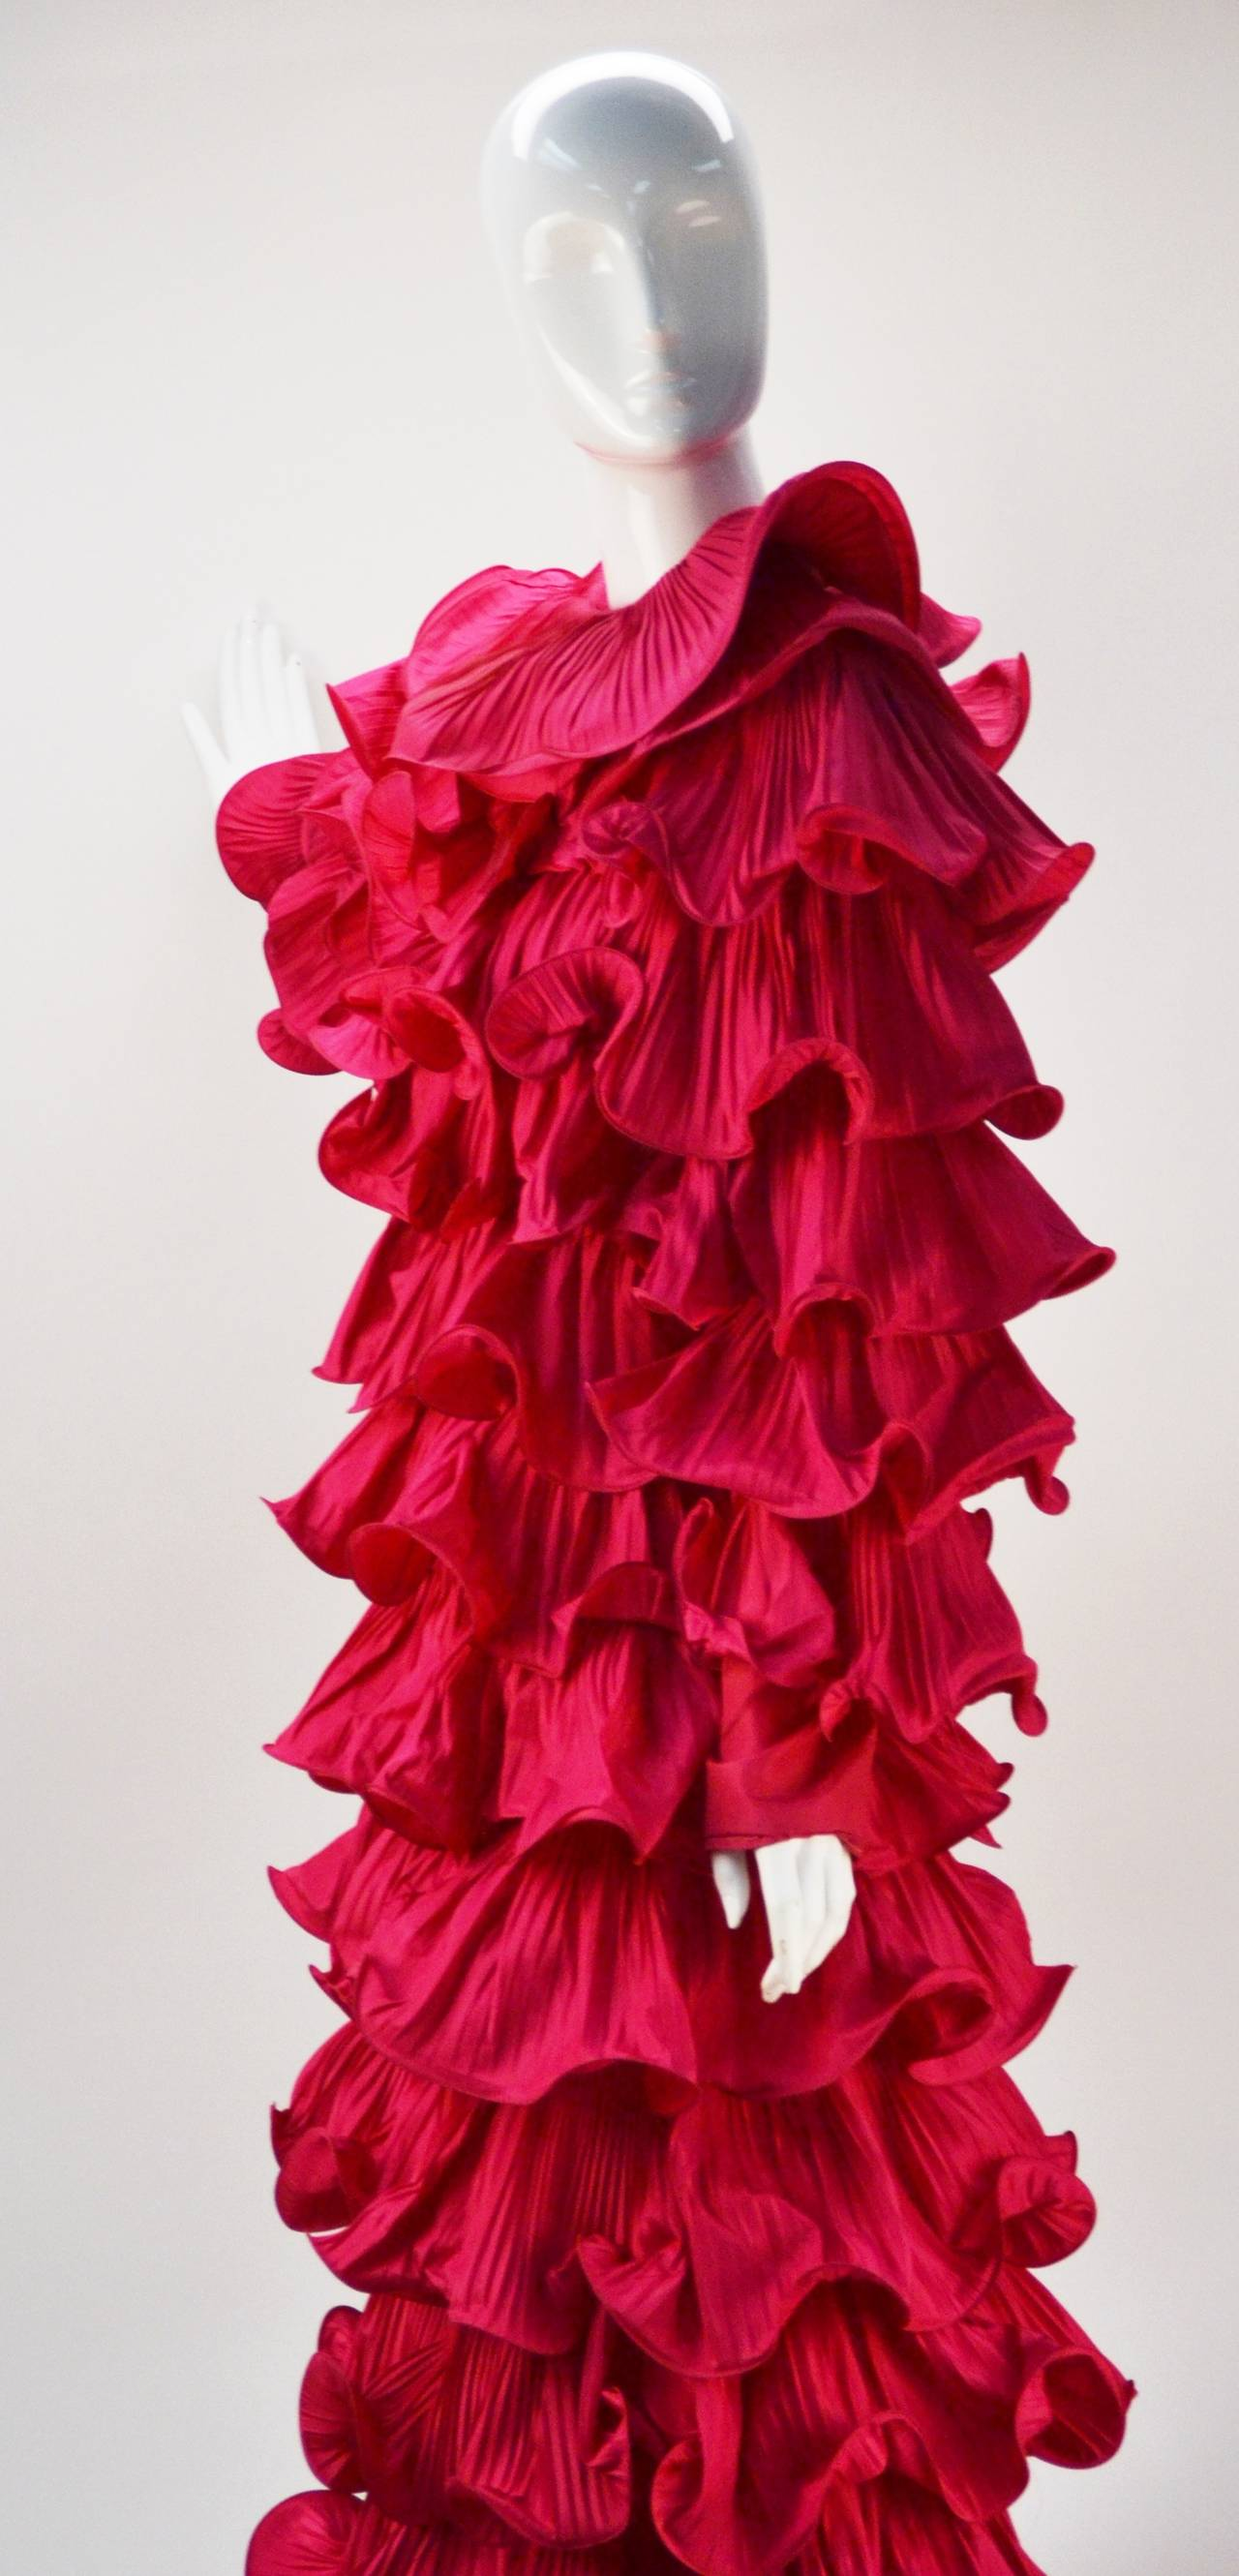 1980s Pierre Cardin Haute Couture Fuschia Ruffled Evening Gown In Good Condition For Sale In Houston, TX